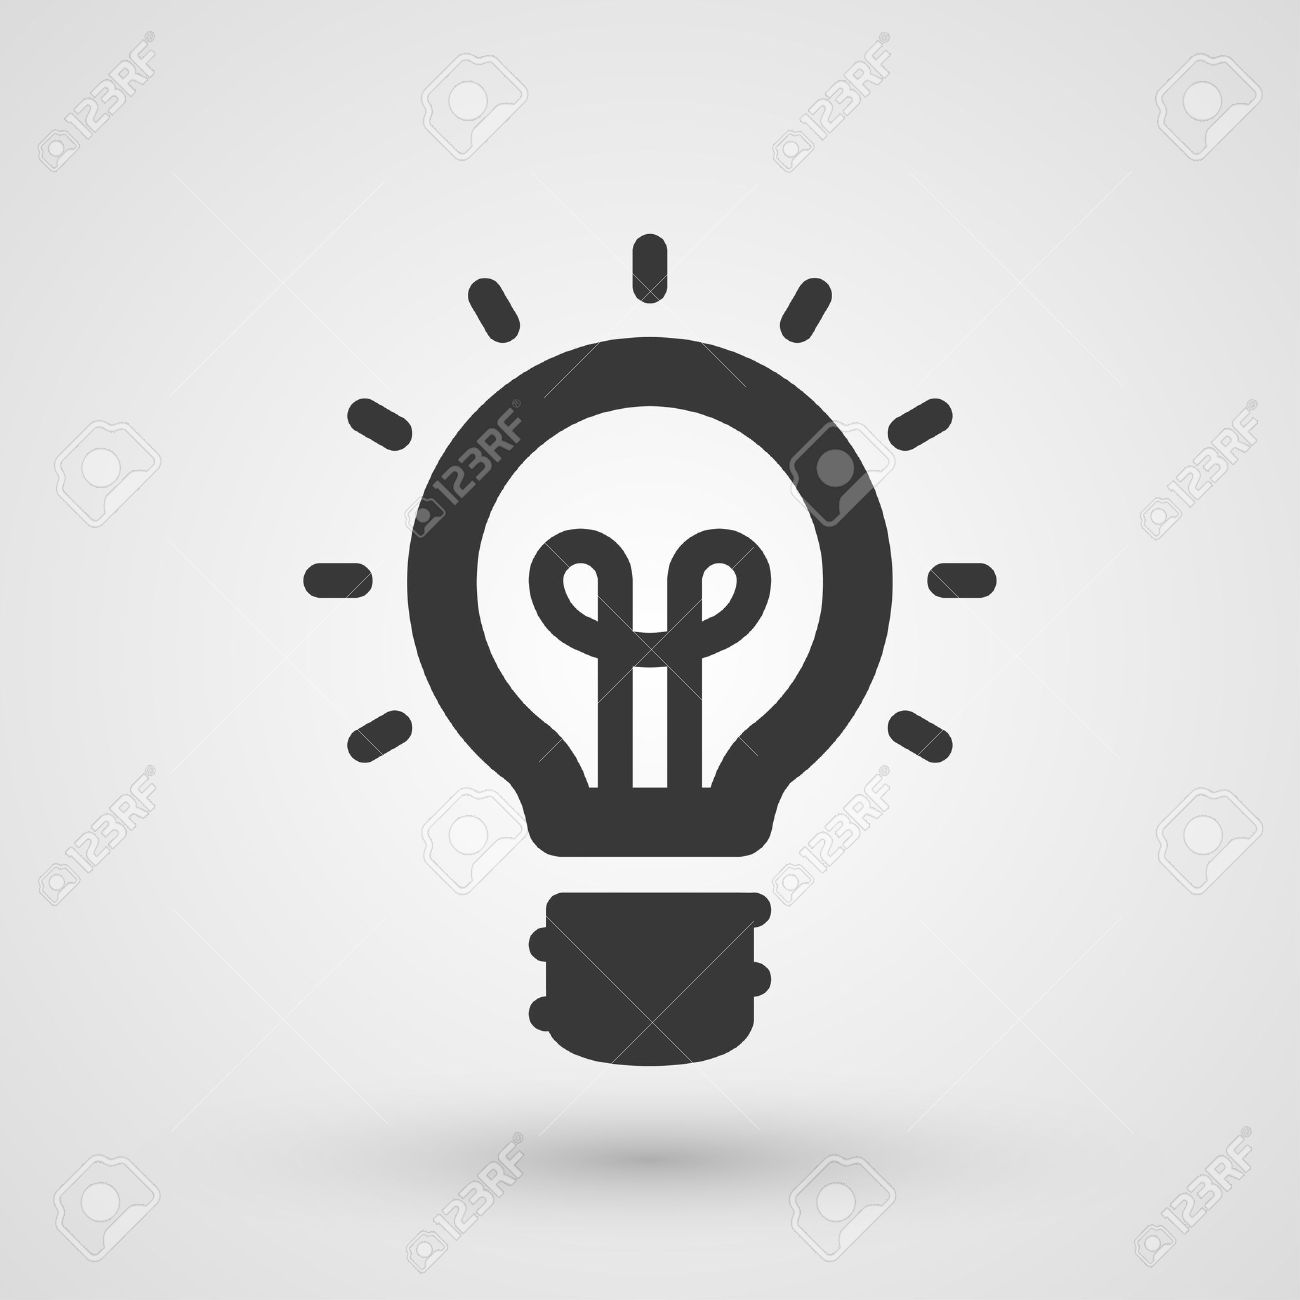 Black Idea Icon. Innovation And Creativity Concept Royalty Free ...